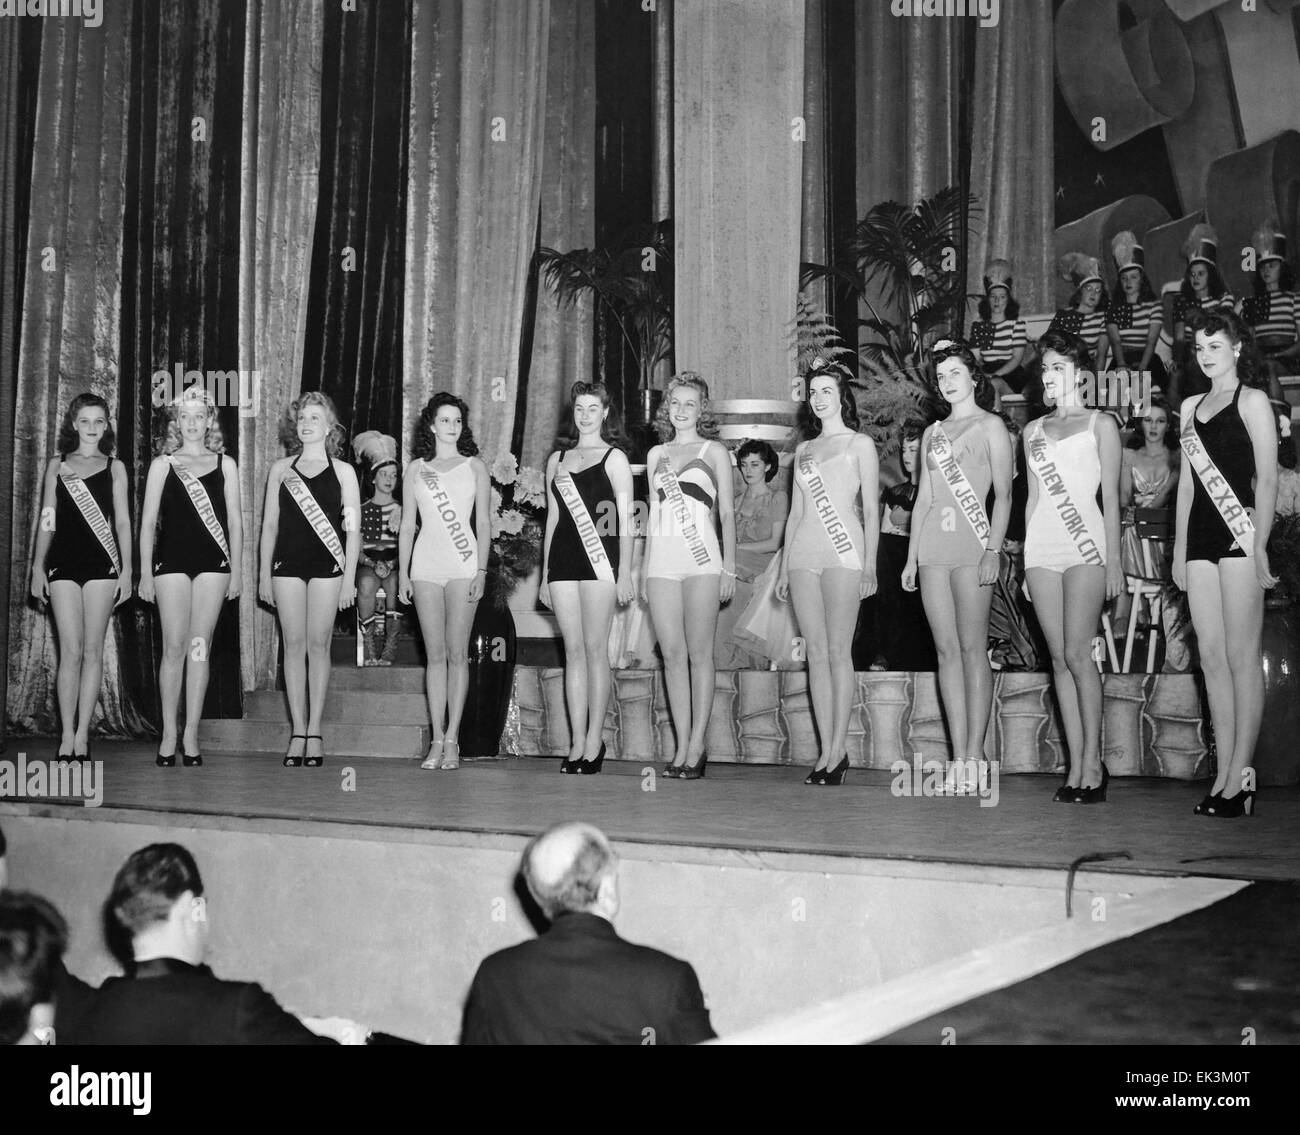 Eventual Winner Jo-Carroll Dennison, right, and Other Miss America Pageant Semi-finalists, September 12, 1942 Stock Photo